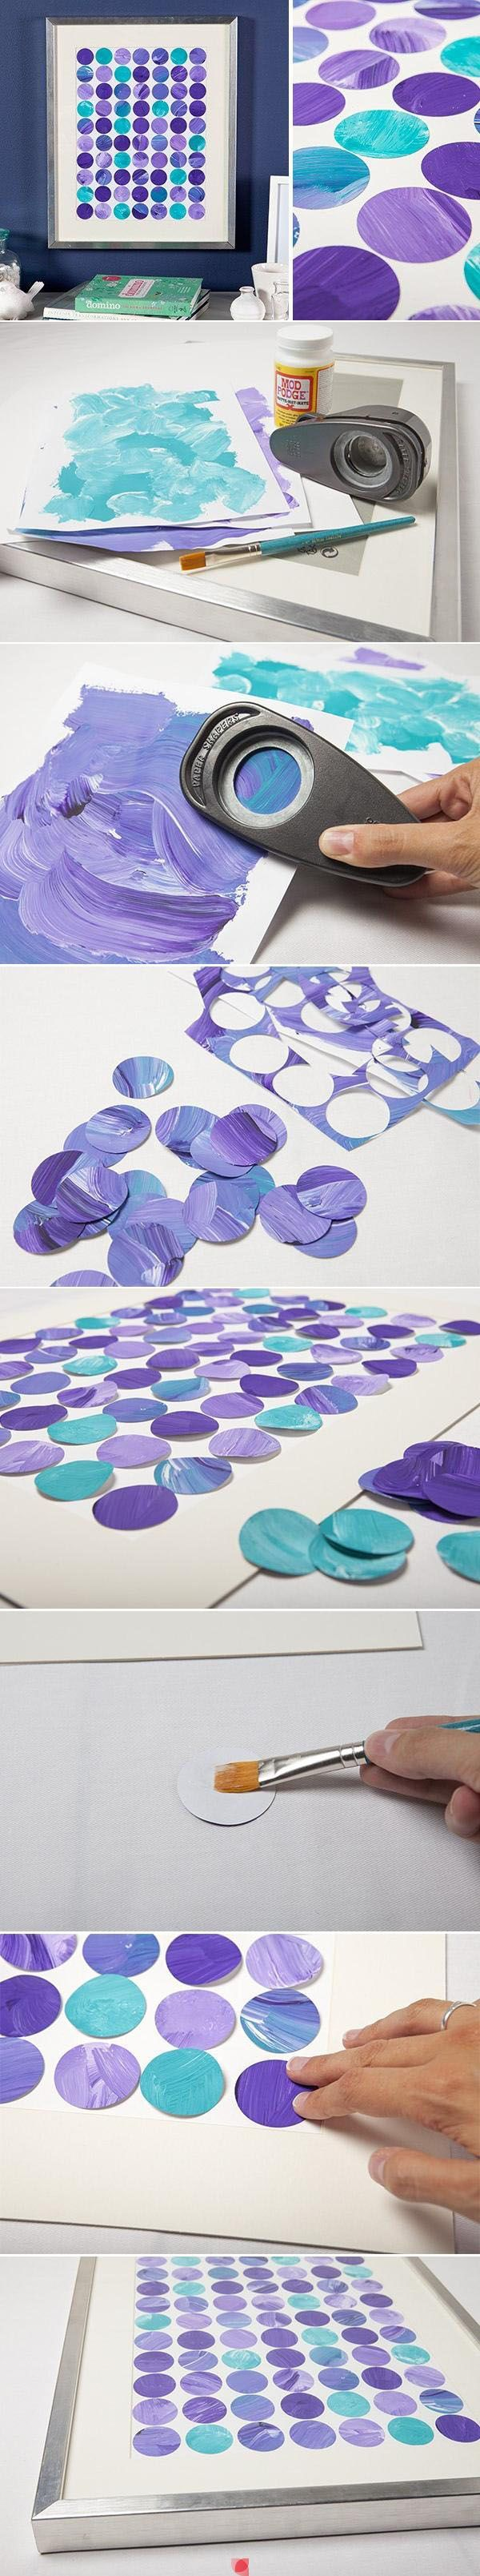 It's so simple, just mix paint, cut out circles, and place together to form a cute piece of artwork